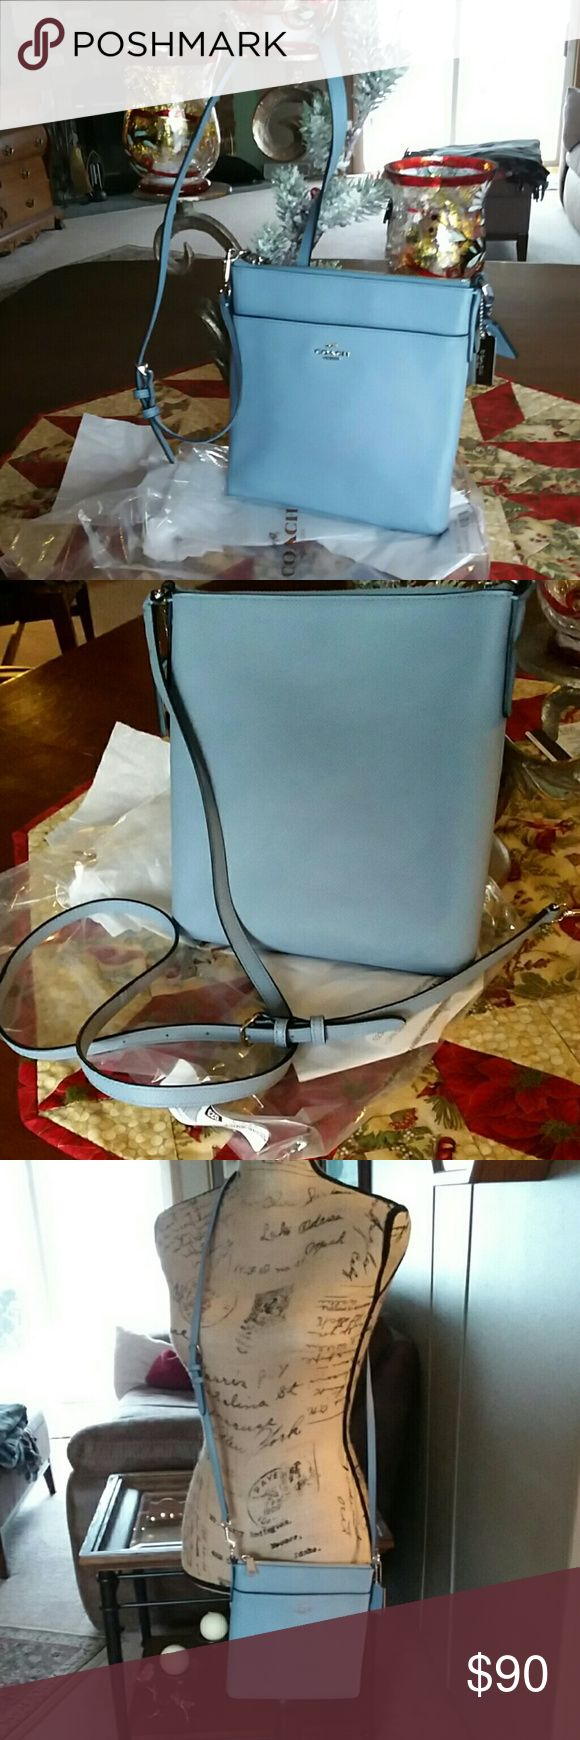 """Coach Small Crossbody Courier Really cute authentic Coach pebble leather crossbody bag. Soft muted blue. One inside pocket. 8X8.5"""" with 47"""" adjustable  strap and silver hard ware. Two Coach tags. Brand new never used. To small for me. Coach Bags Crossbody Bags"""